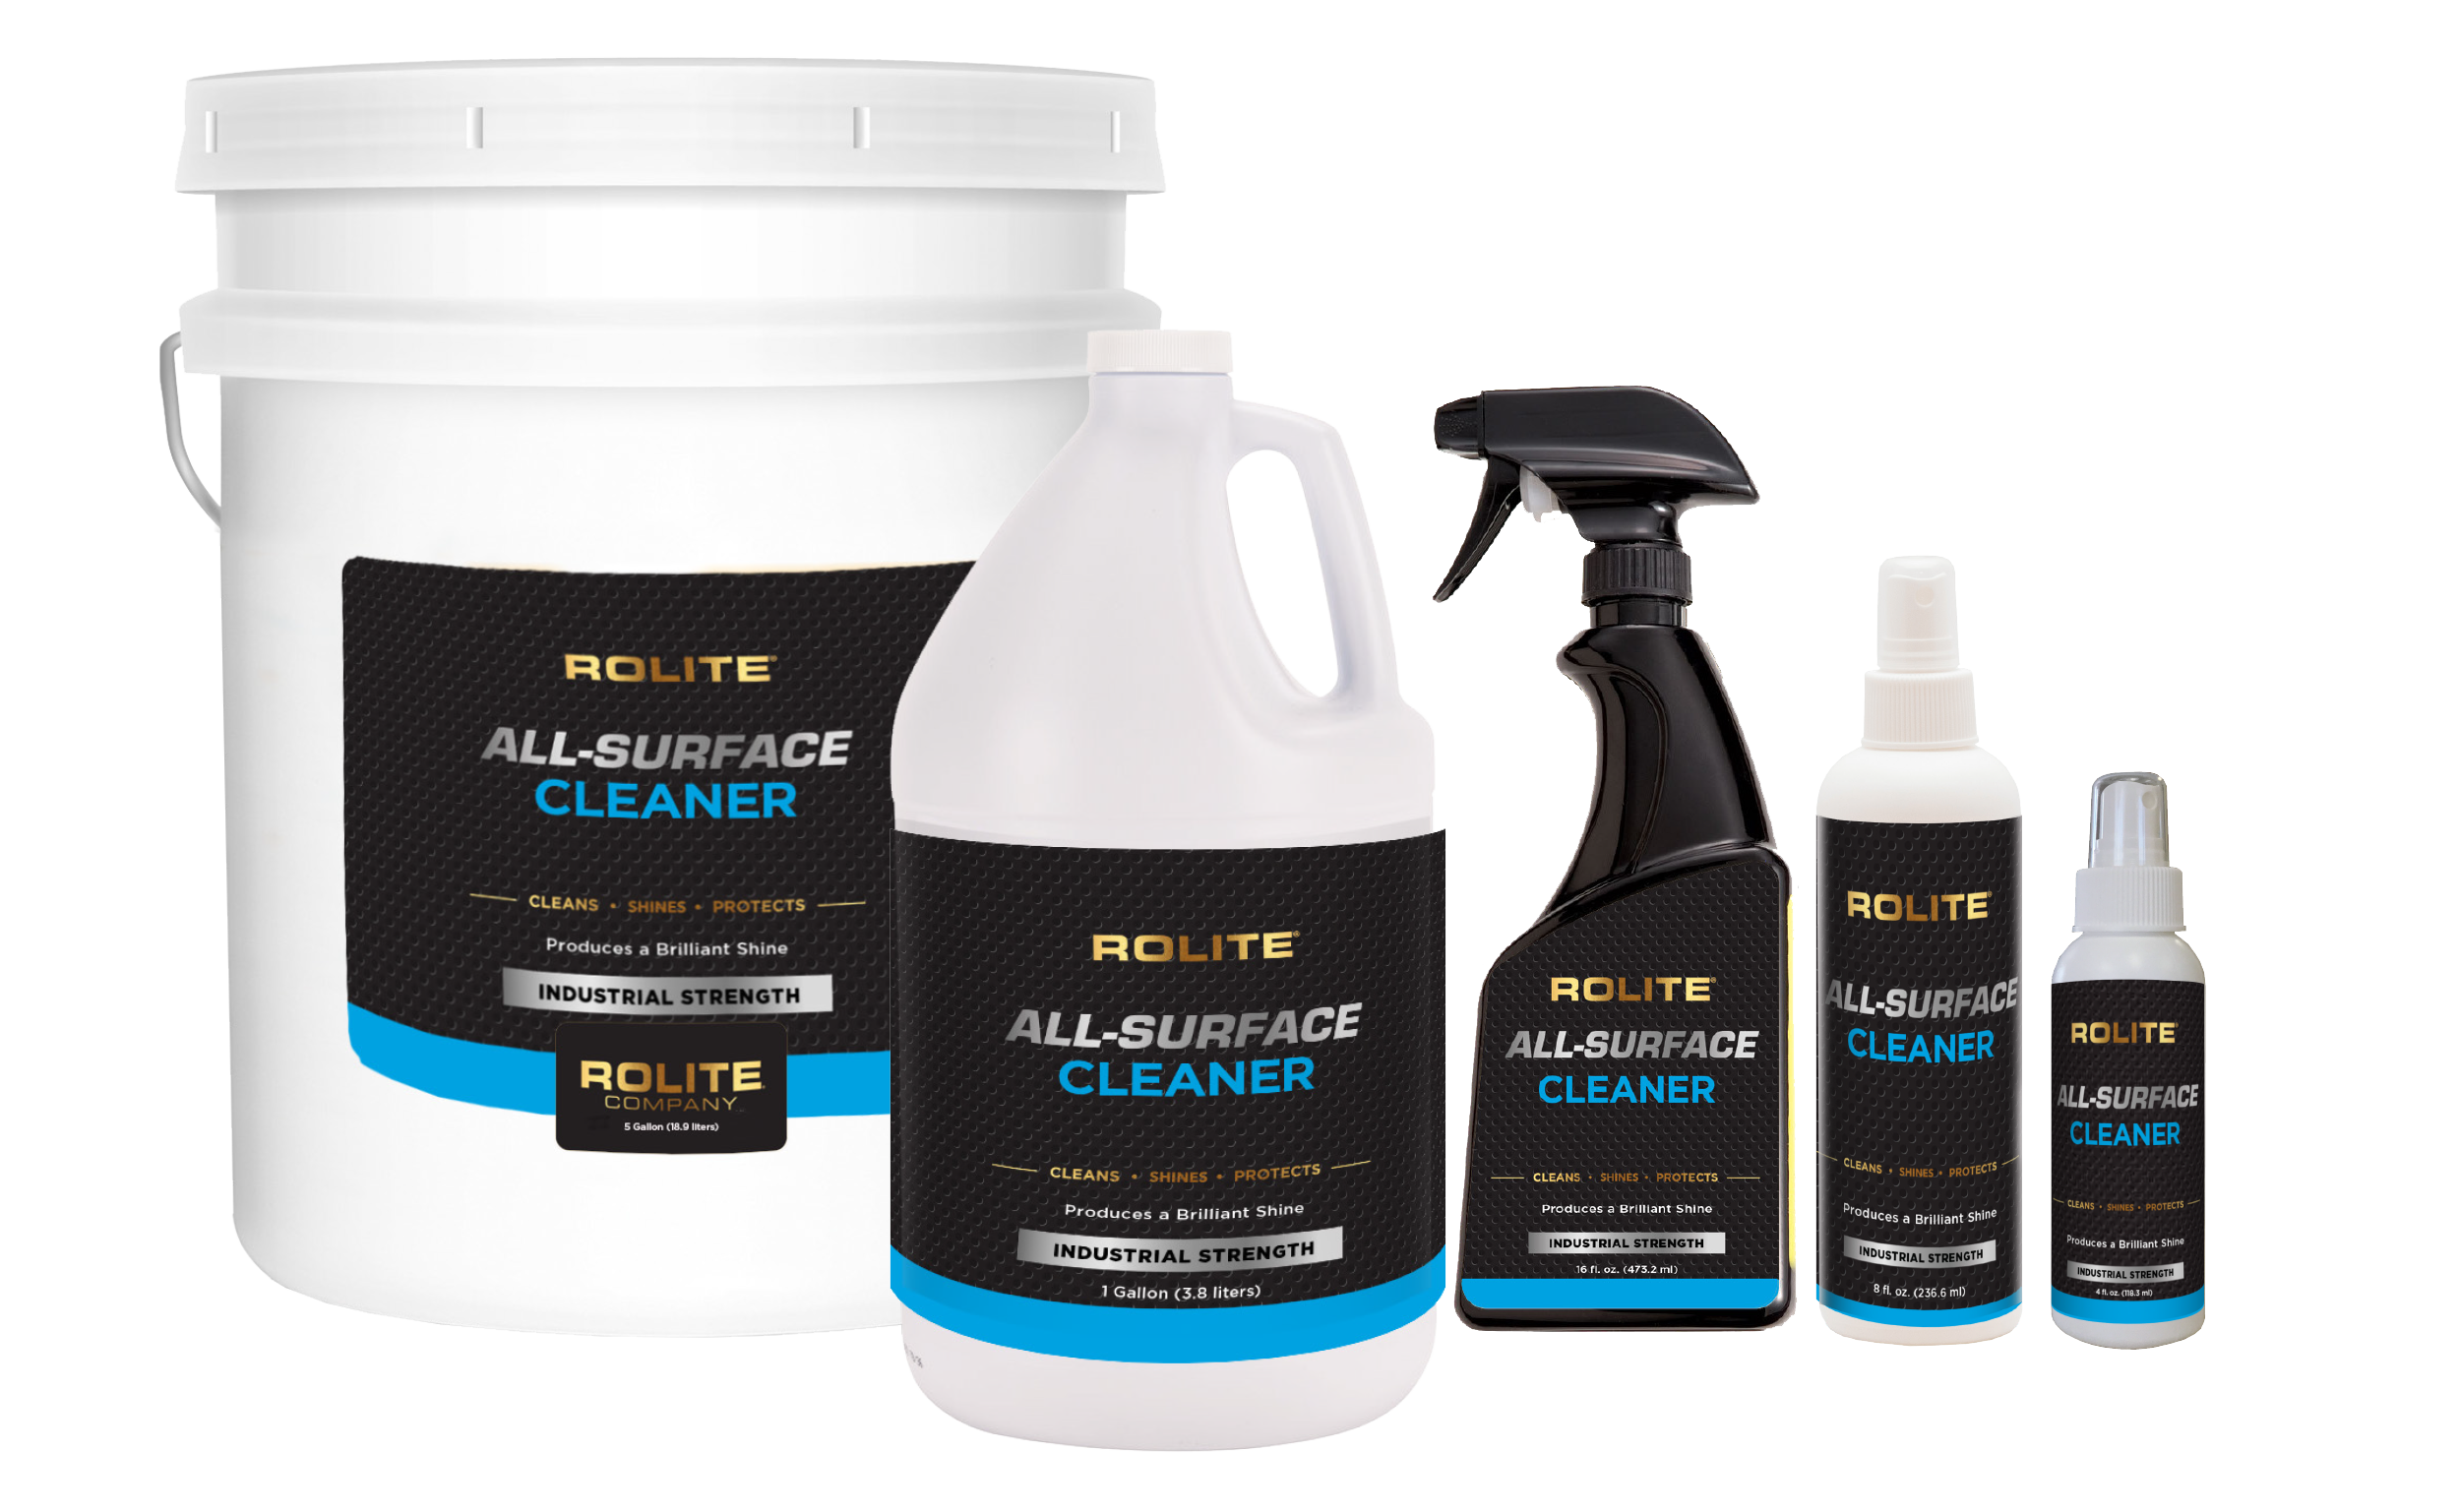 Rolite All-Surface Cleaner